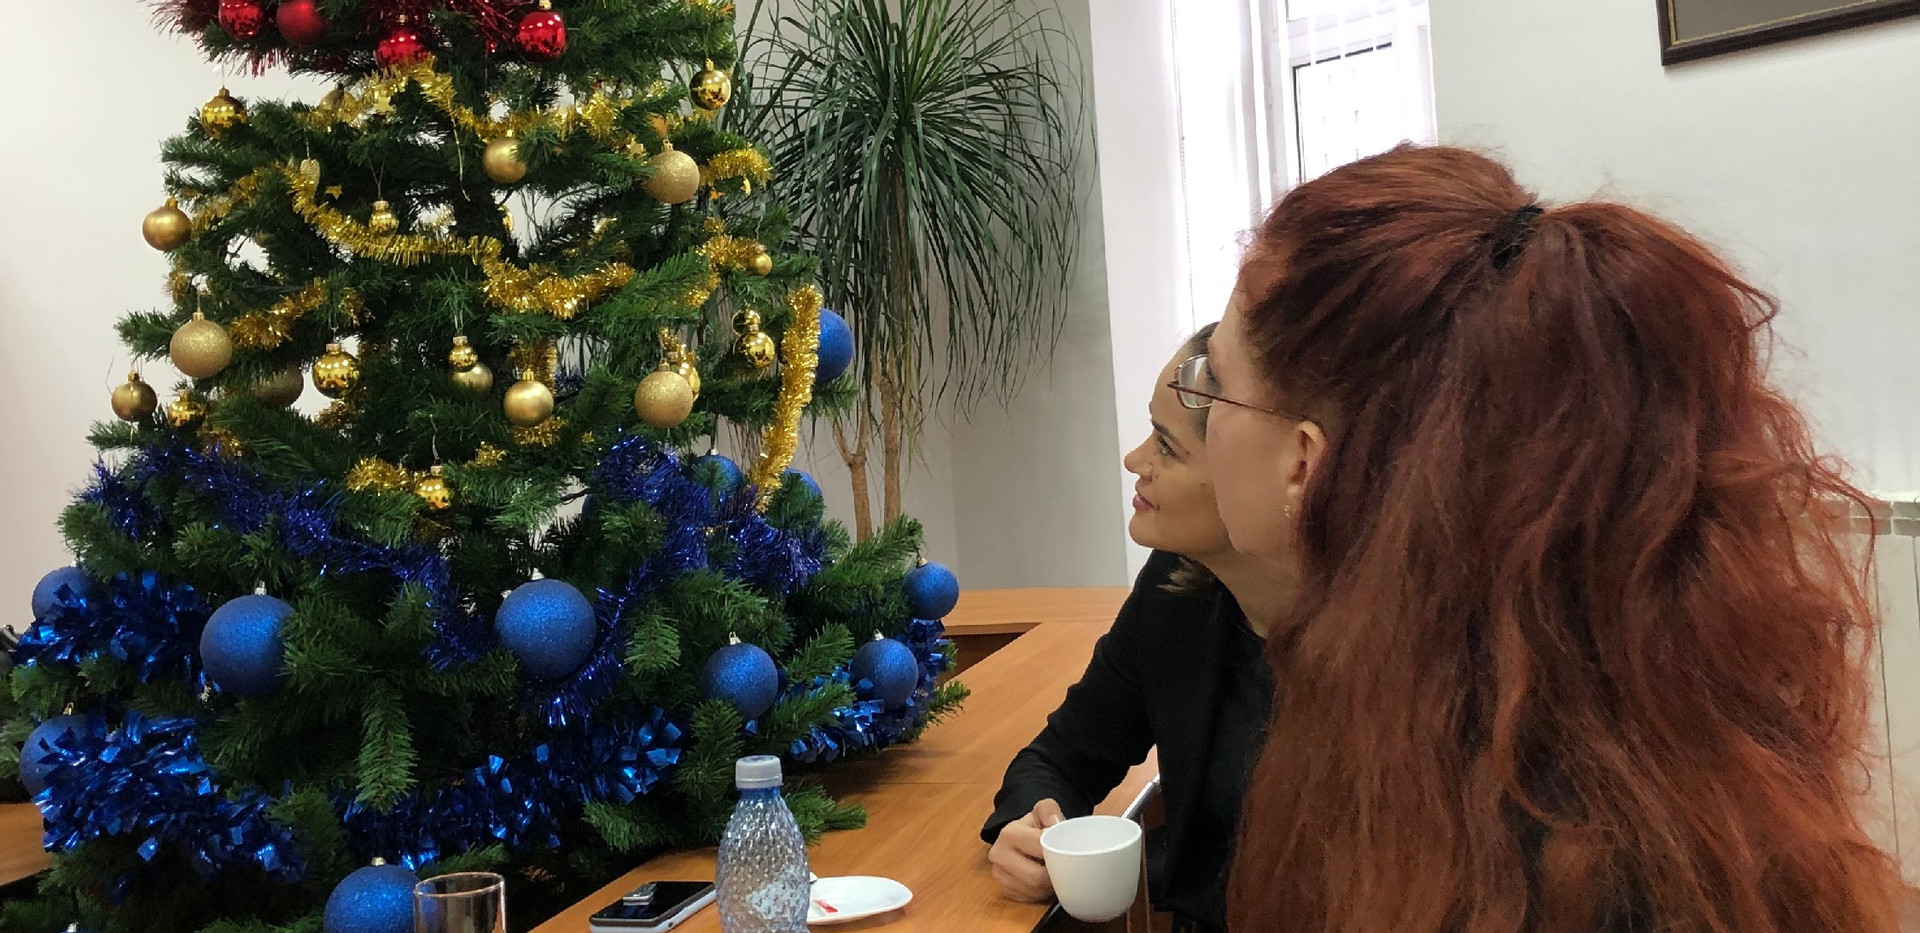 Romanian Law School Christmas Tree